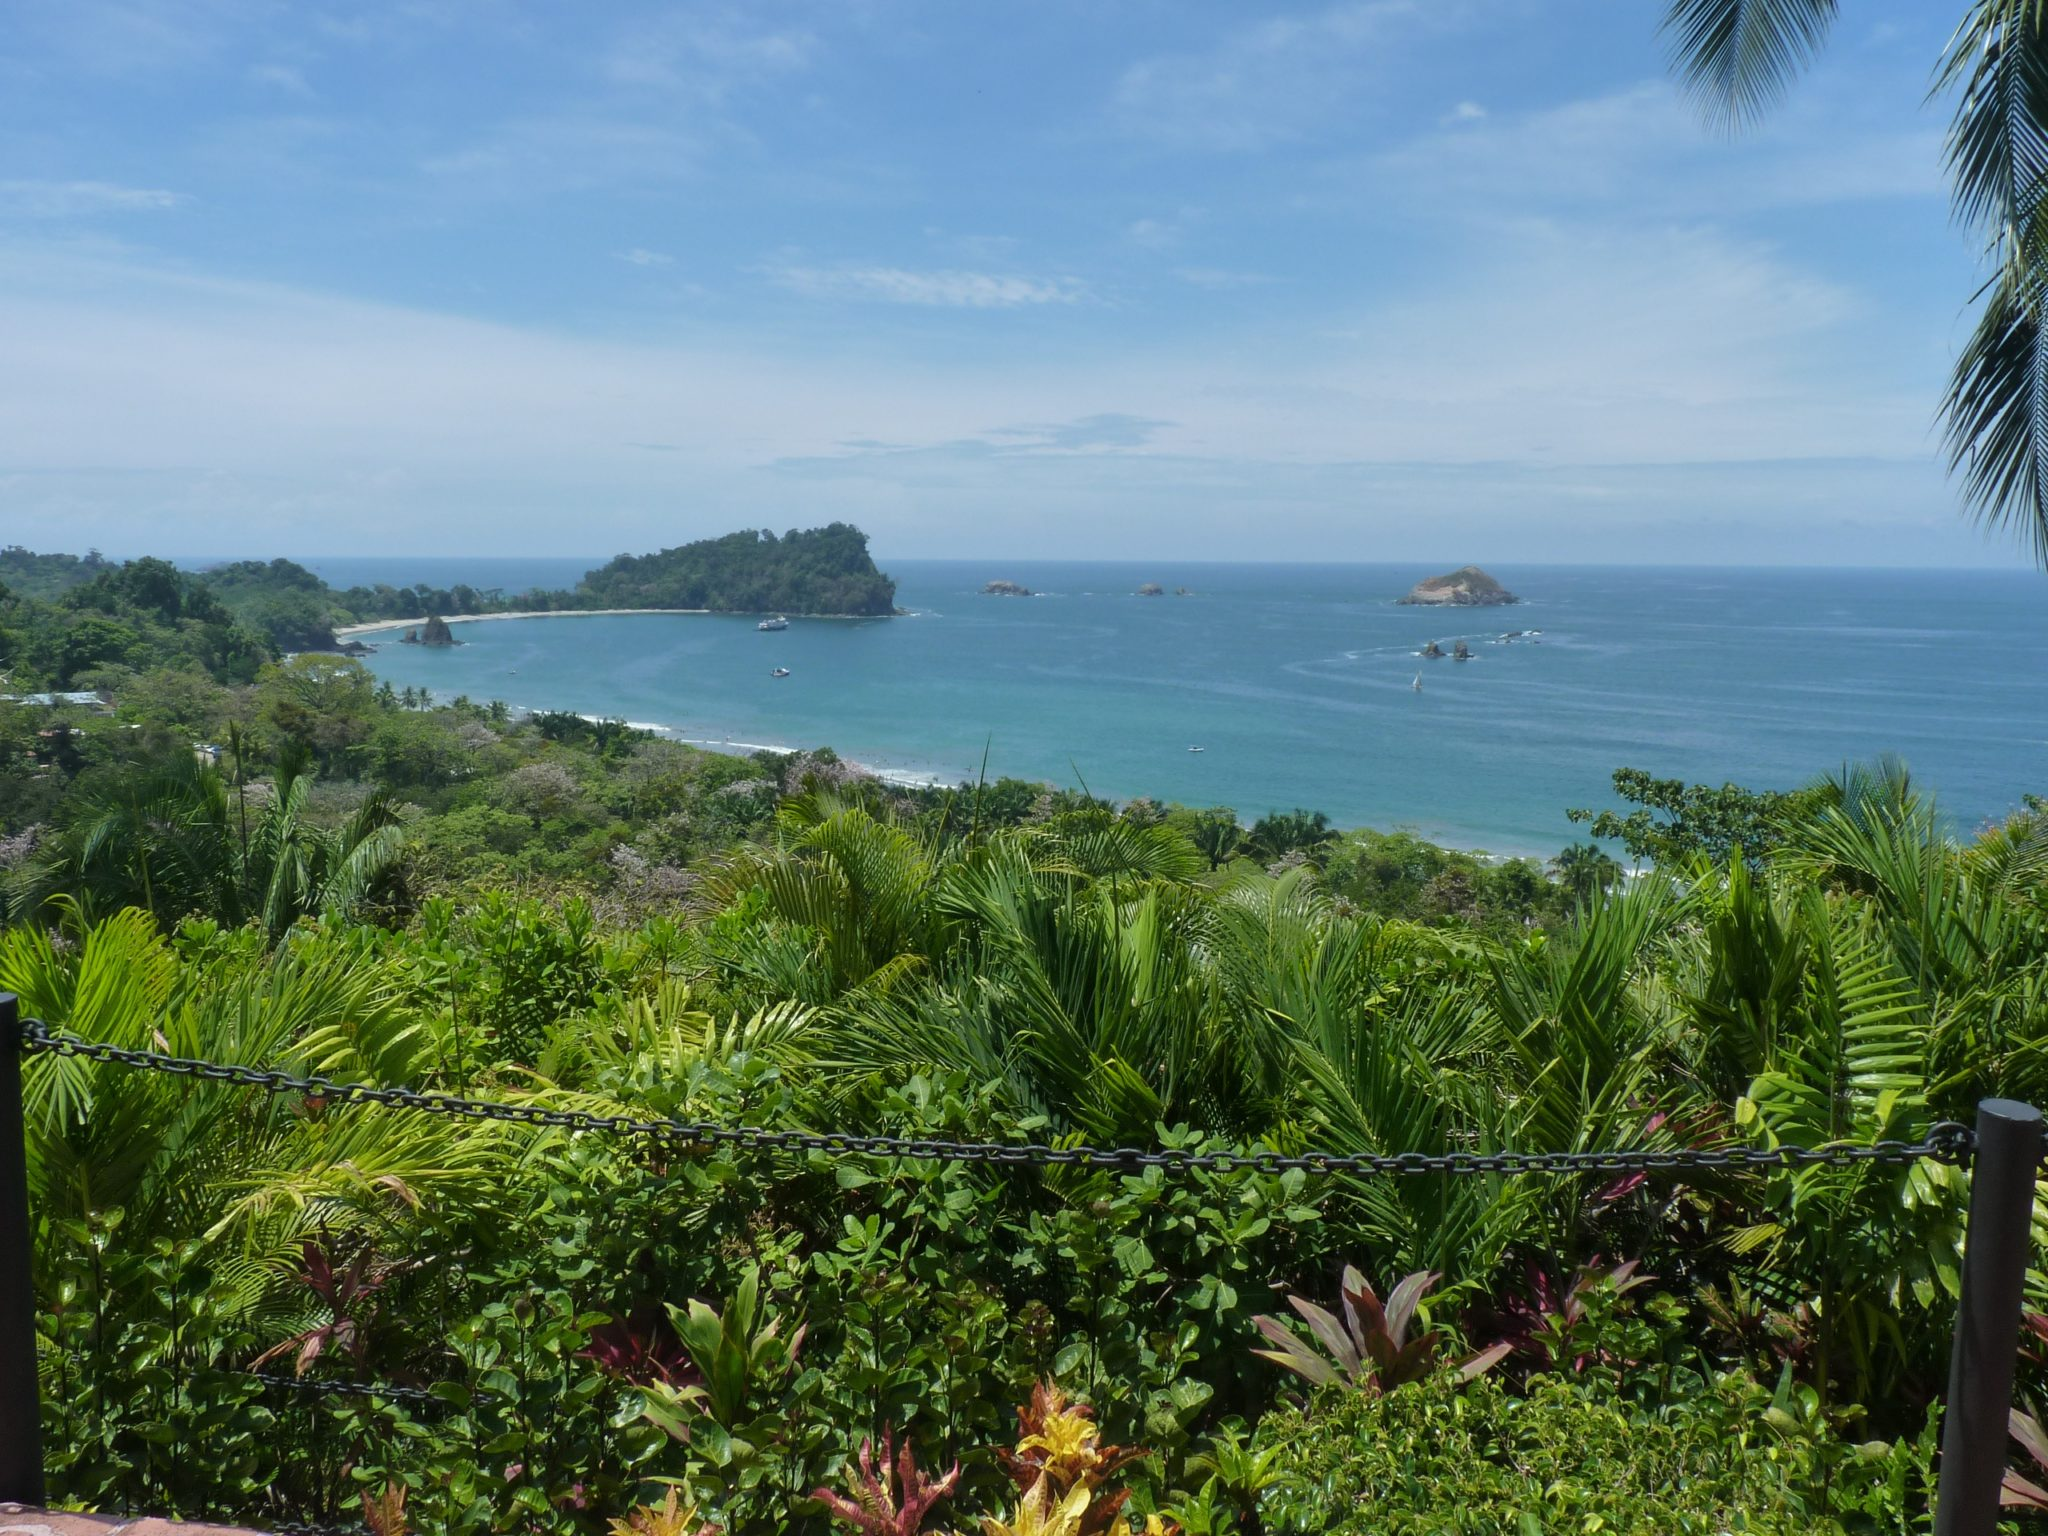 lune-miel-costa-rica-paysage-sauvage-tropicale